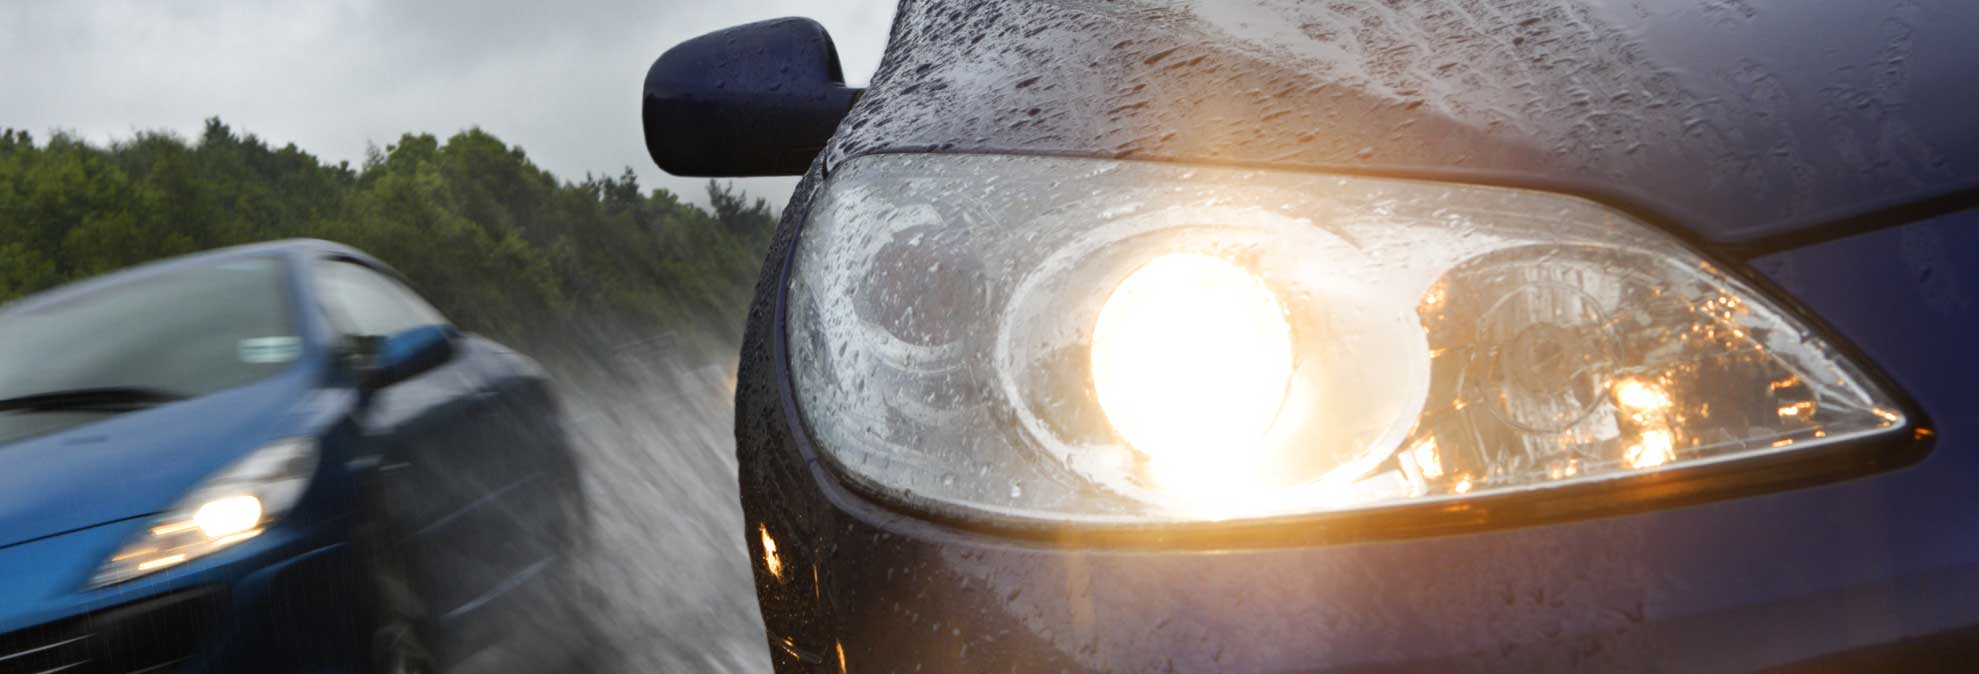 Best Headlight Restoration Kit Buying Guide Consumer Reports